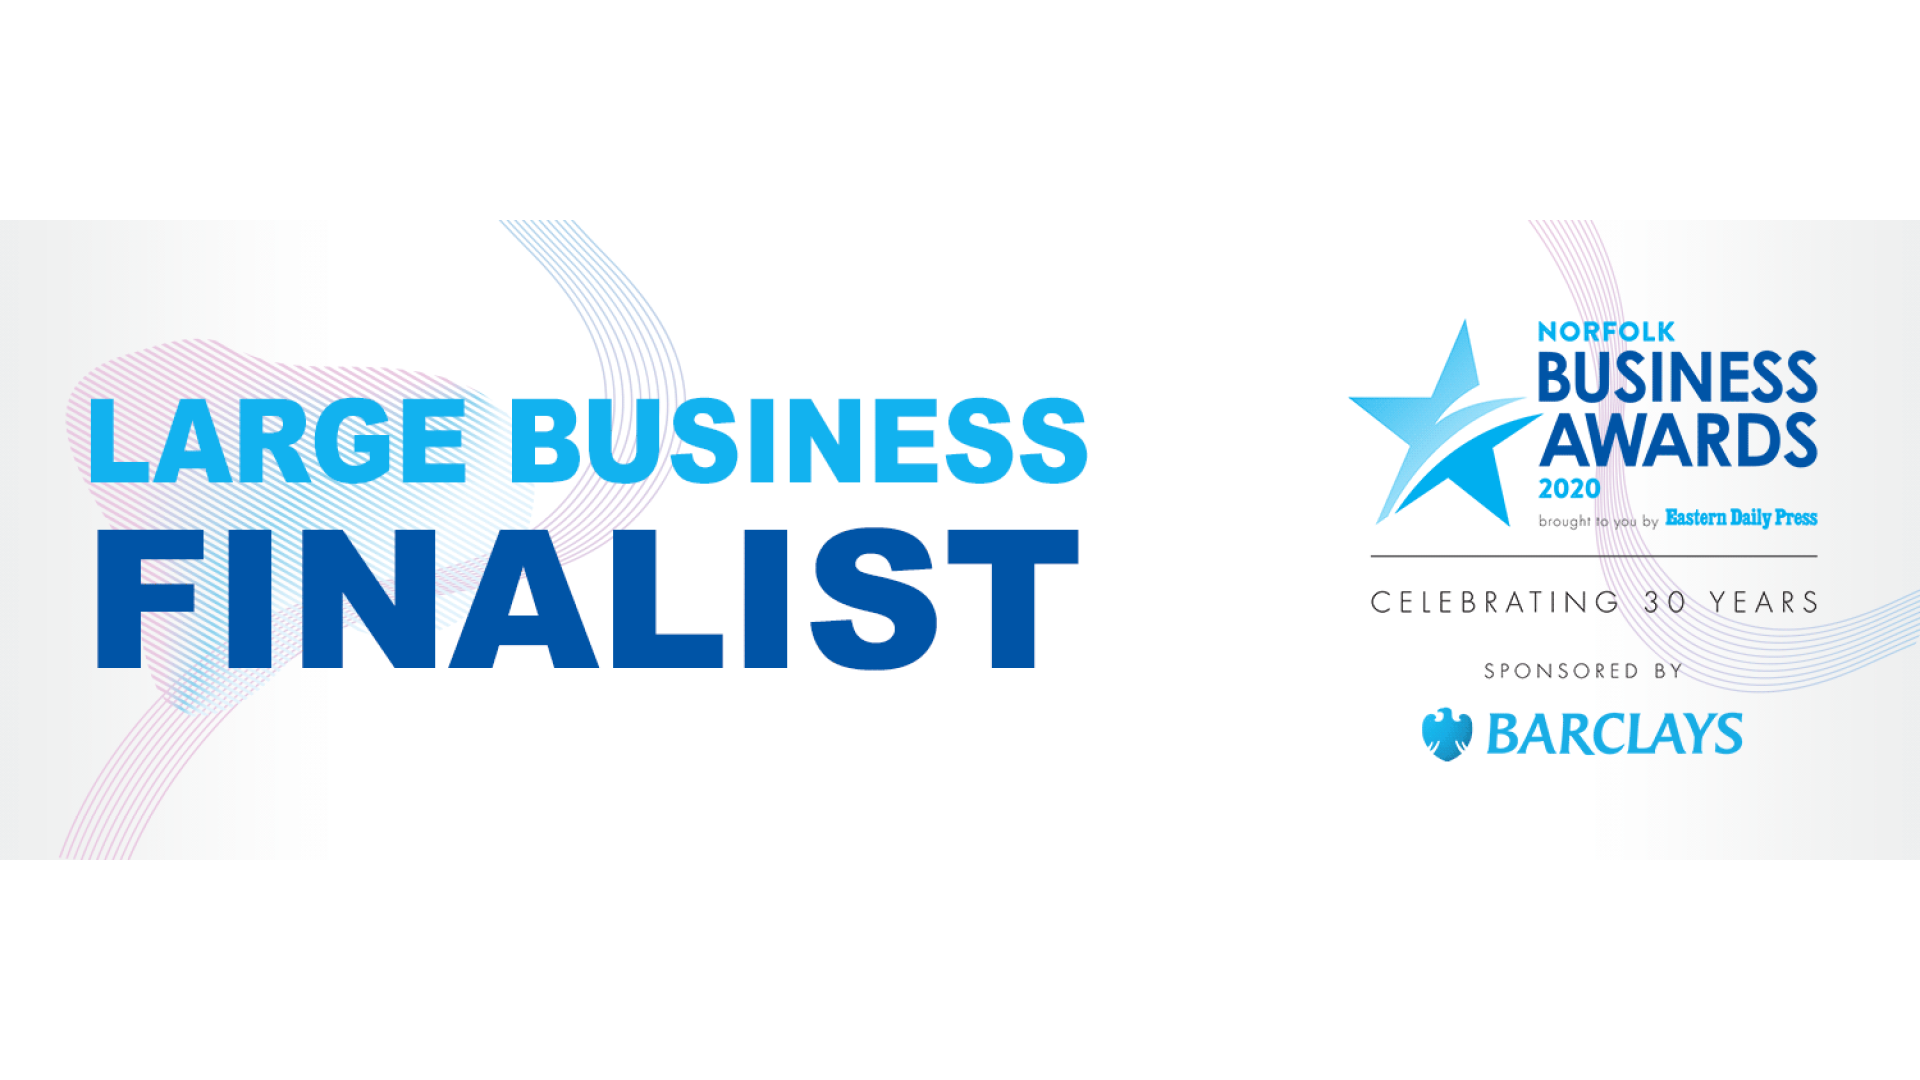 The TaxAssist Group announced as finalist for 'Best Large Business' award for second year running